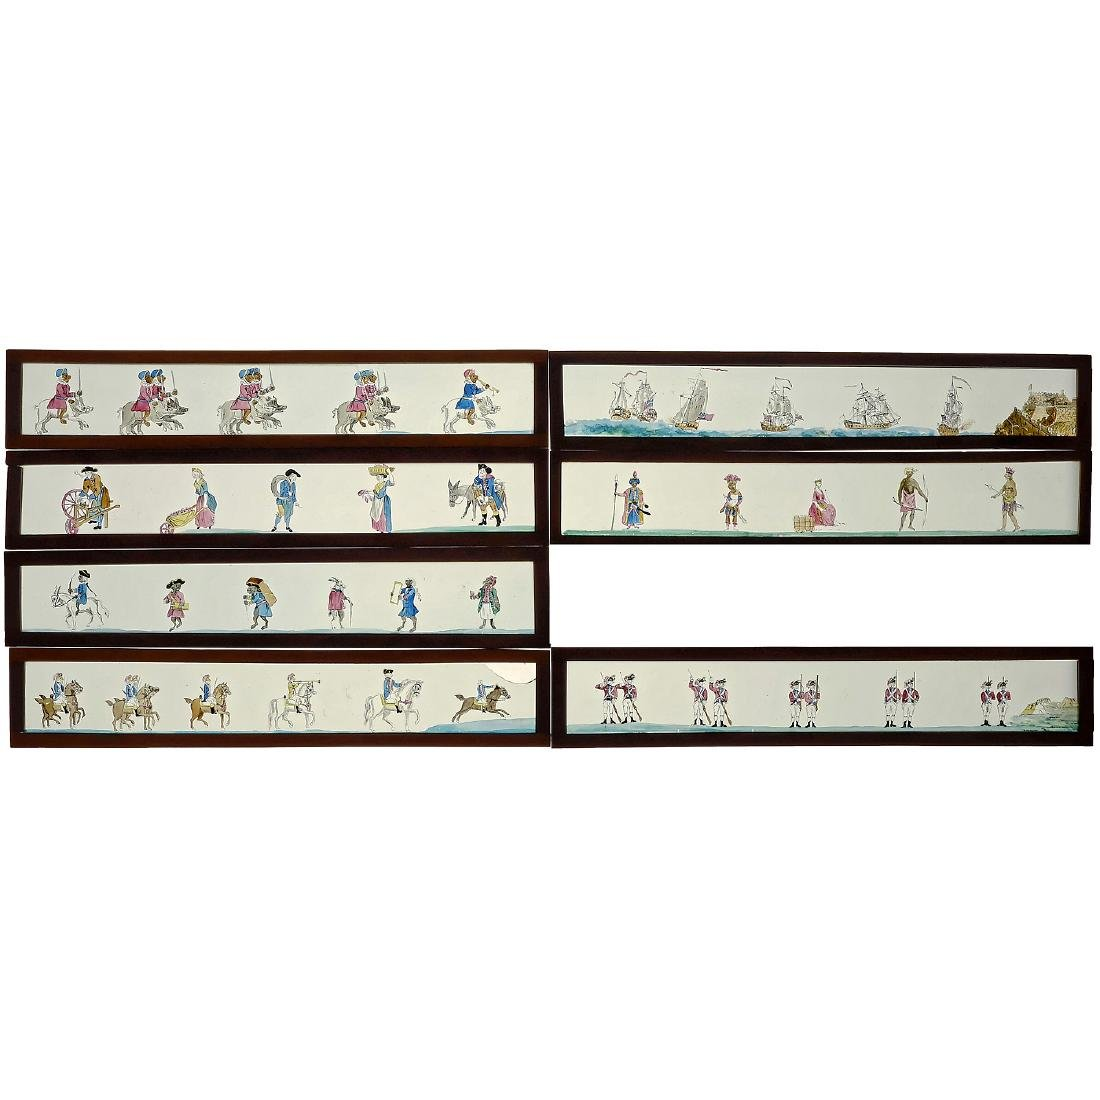 7 Hand-Painted Panoramic Lantern Slides 3 ½ x 19 in.,